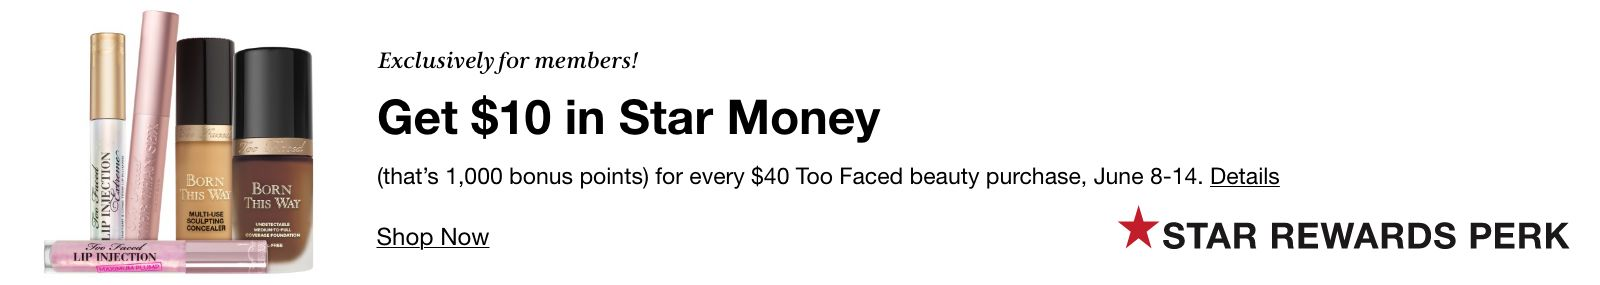 Exclusively for members, Get $10 in Star Money (that's 1,000 bonus points) for every $40 Too Faced beauty purchase, June 8-14, Details, Shop Now, Star Rewards